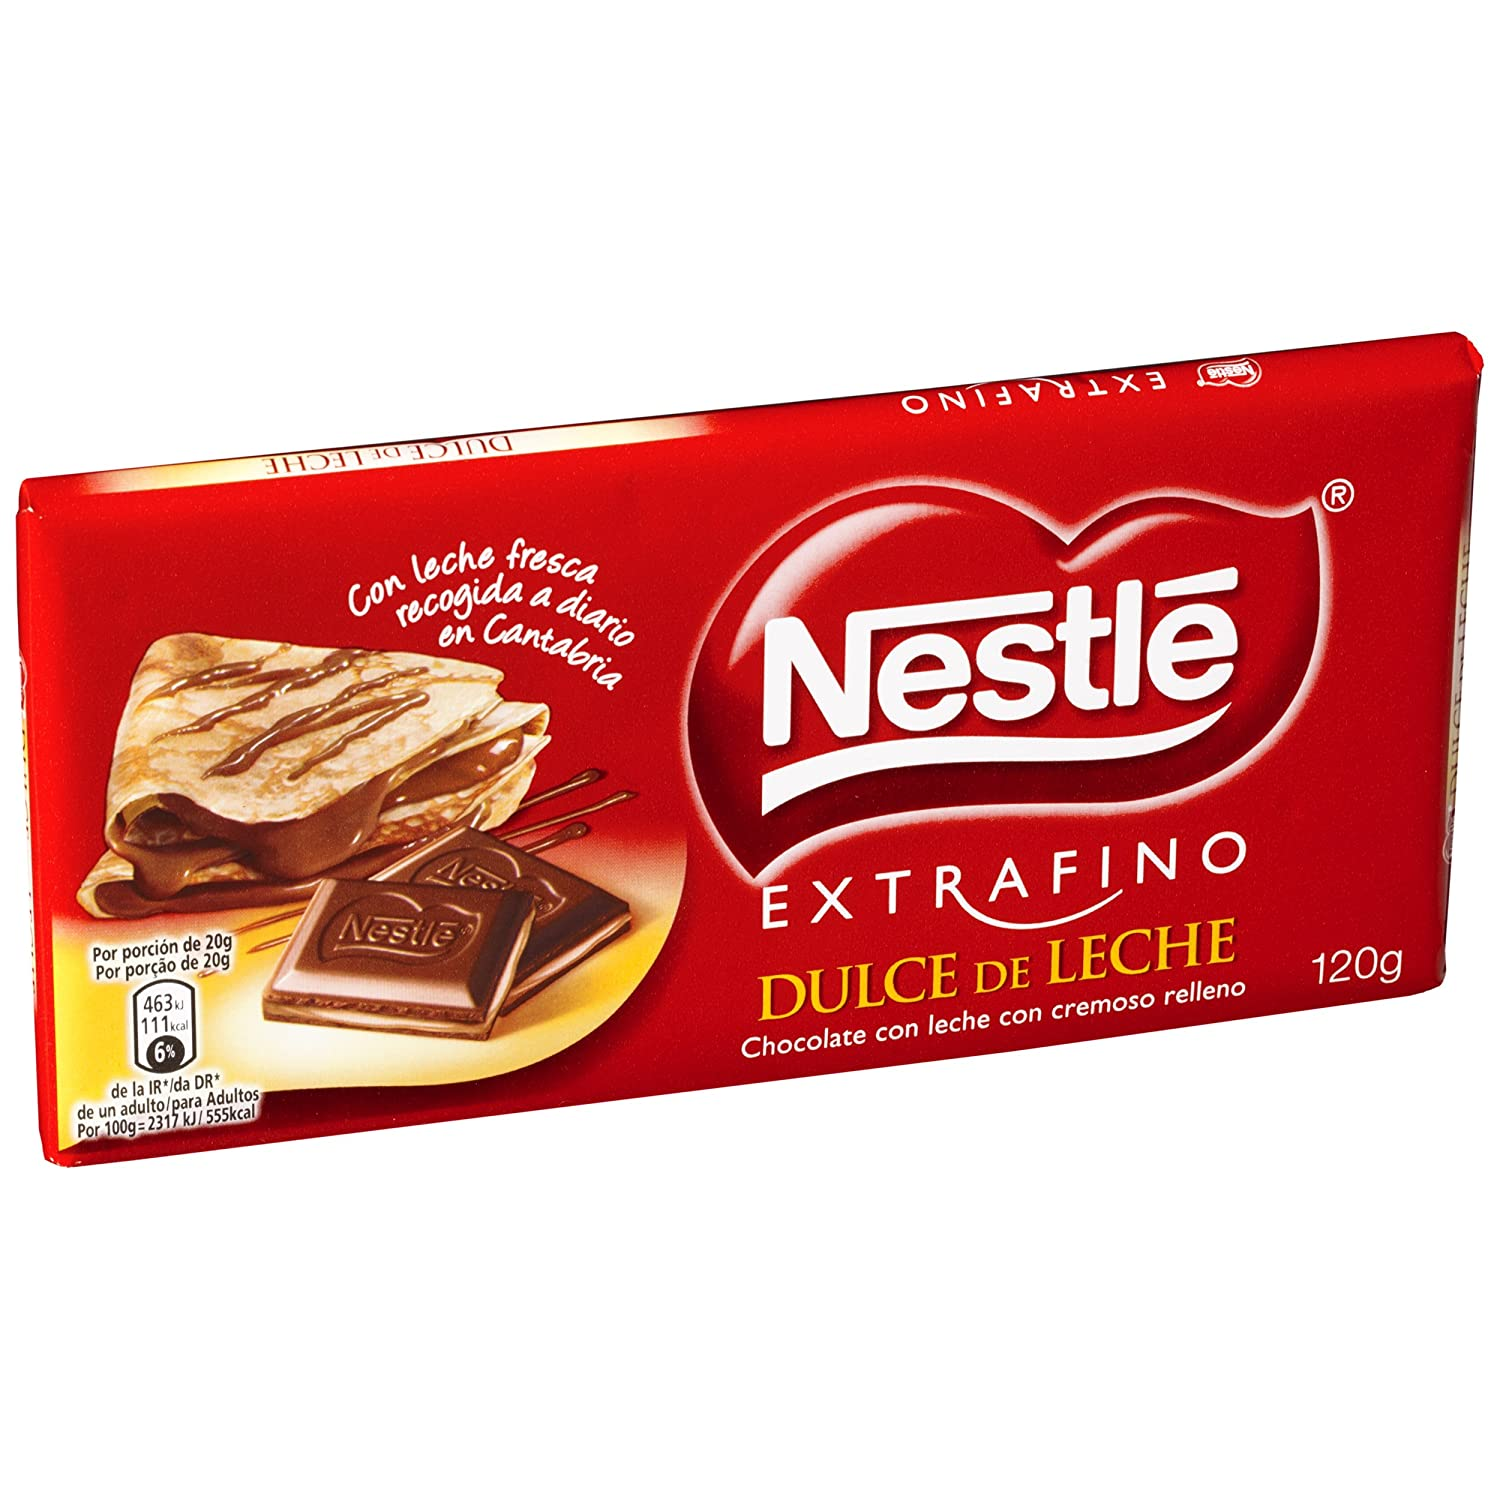 NESTLÉ EXTRAFINO Dulce de Leche - Tableta de Chocolate 120g: Amazon.es: Amazon Pantry